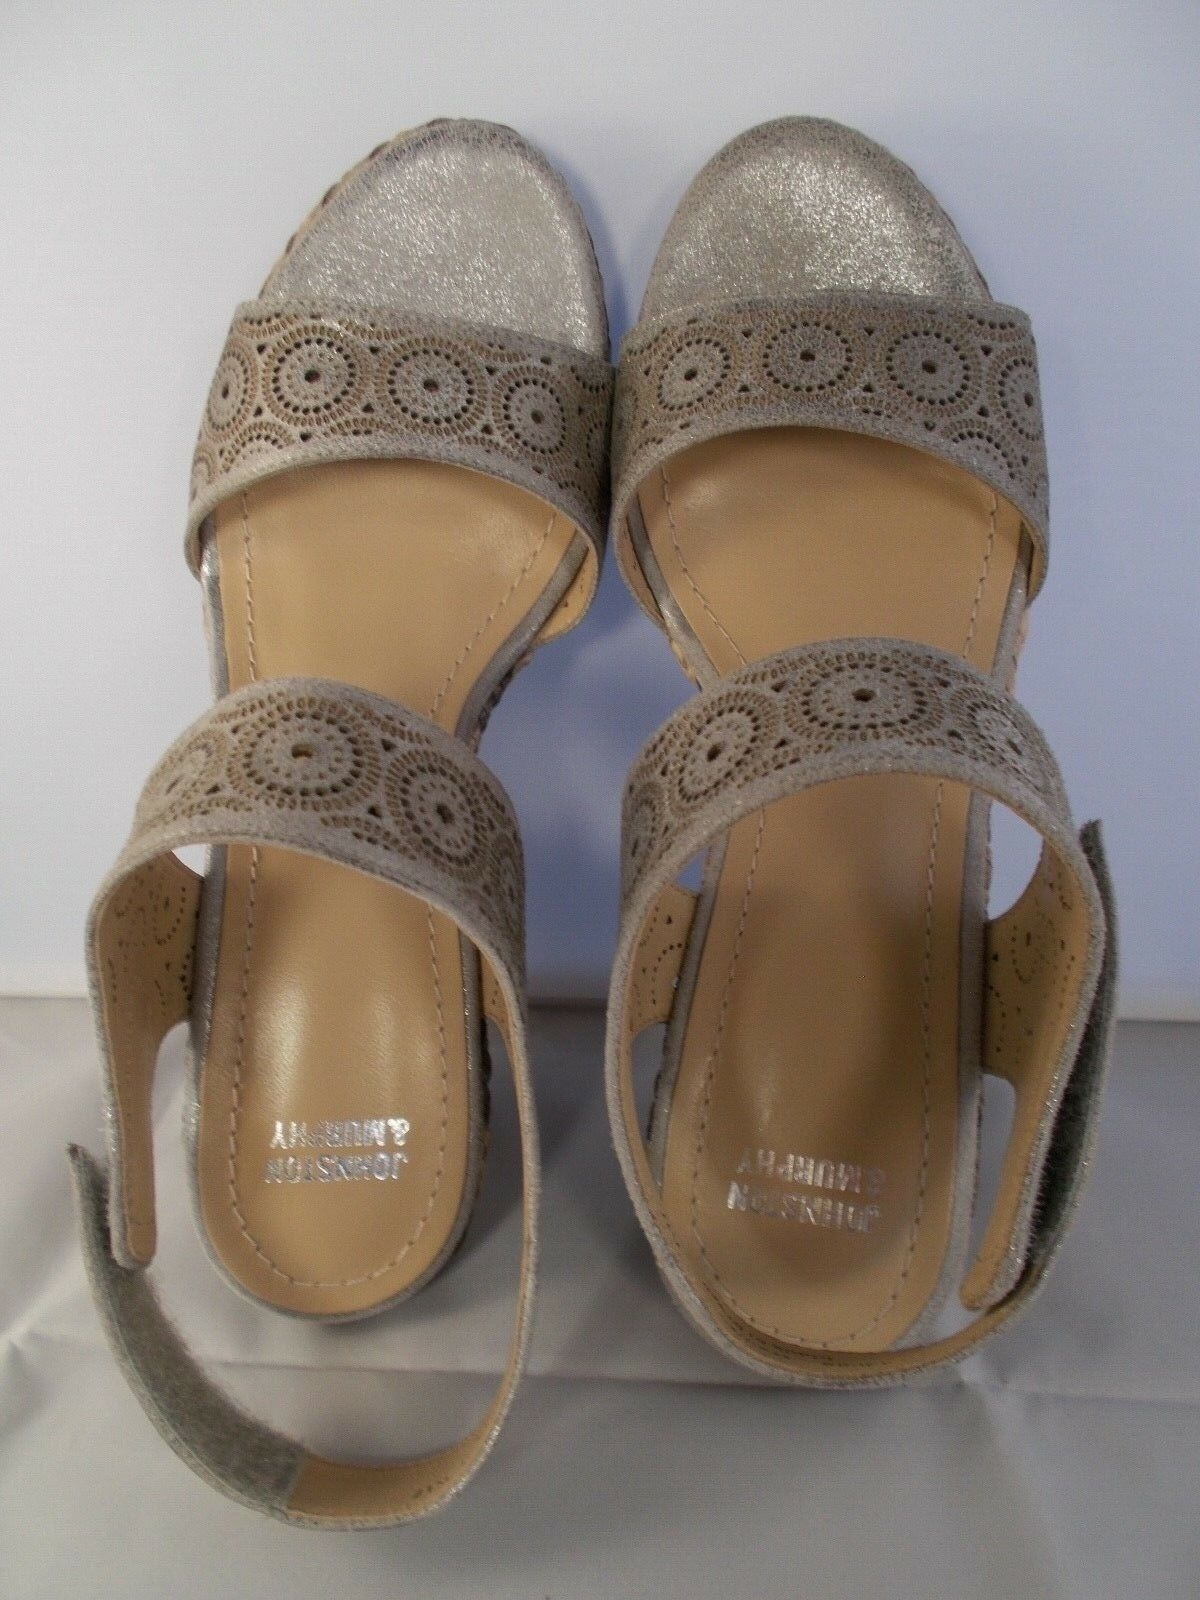 Johnston & Murphy Georgiana Pewter Metallic Leather Leather Leather shoes Womens Sz 7 New In Box b40944